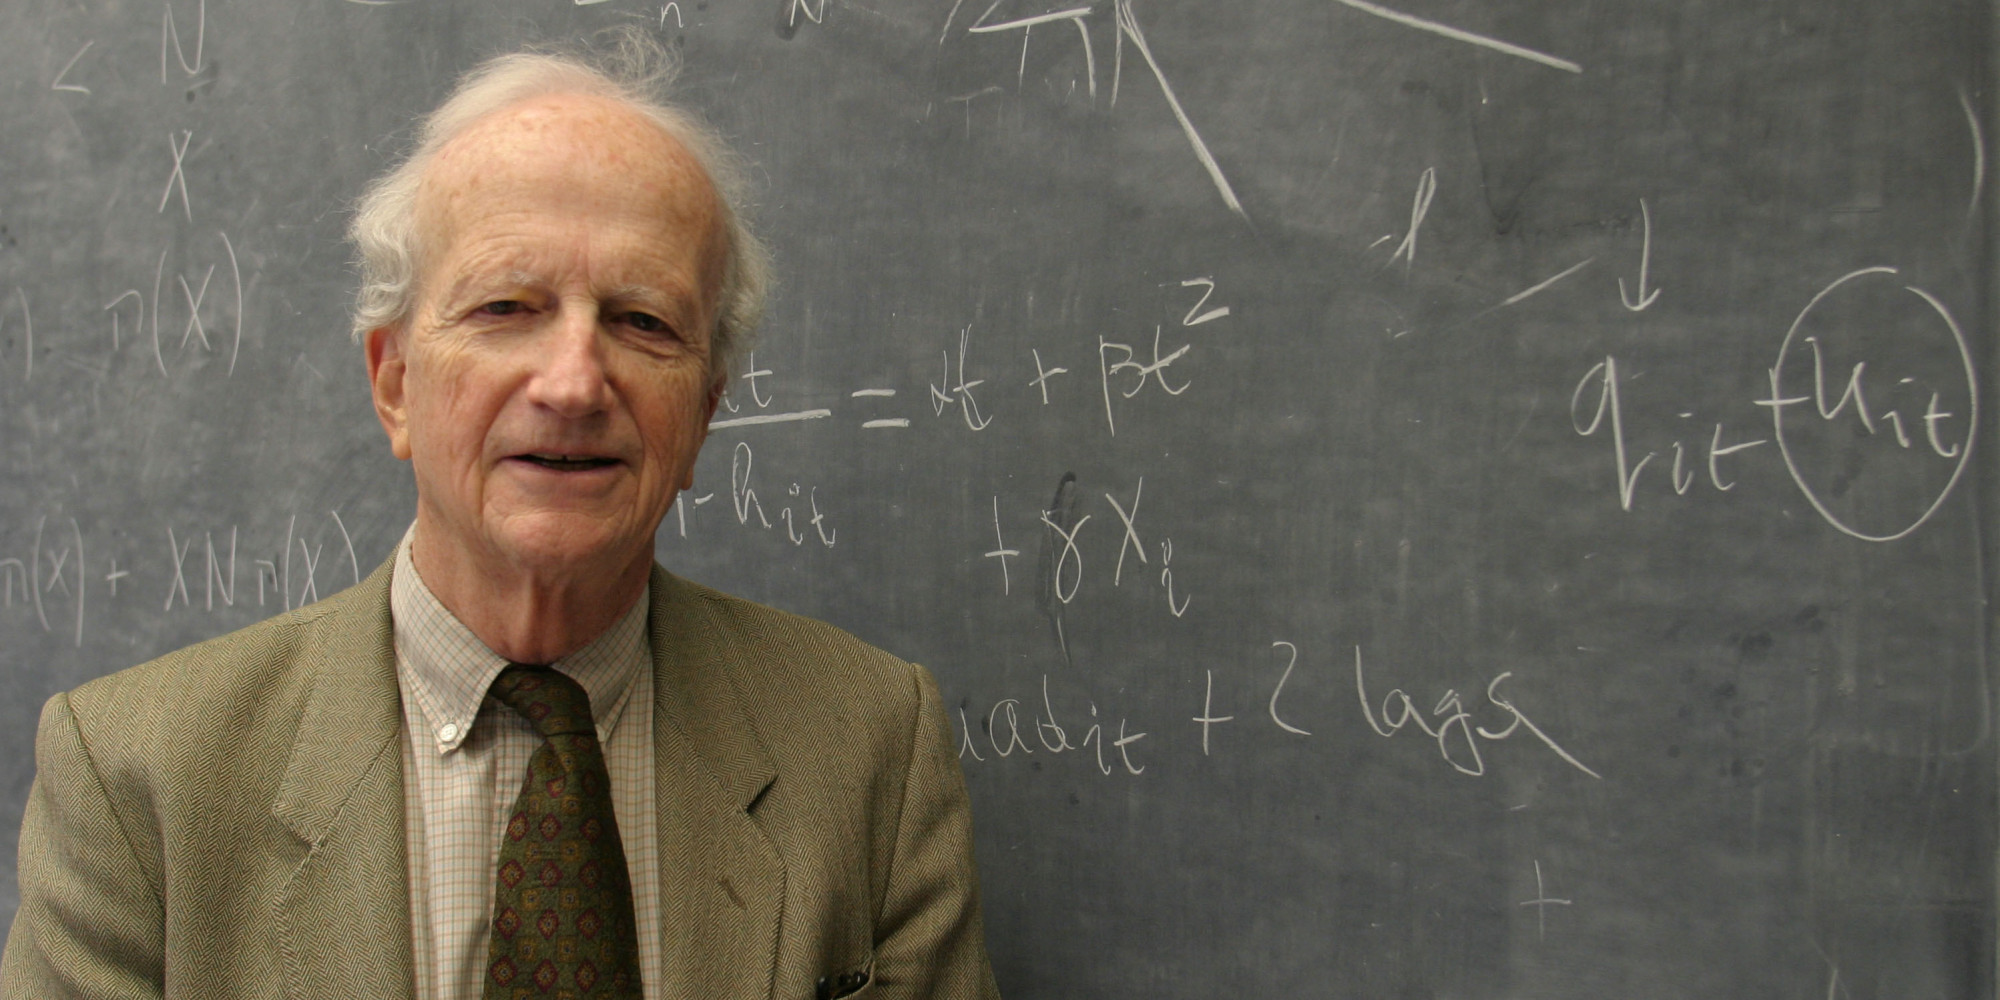 University of Chicago Professor Gary Becker who teaches economics and sociology poses for a portrait in his office, Tuesday, Nov. 1, 2005, in Chicago. Becker has been educating students at the U of C for over thirty years.(AP Photo/Joshua Lott)